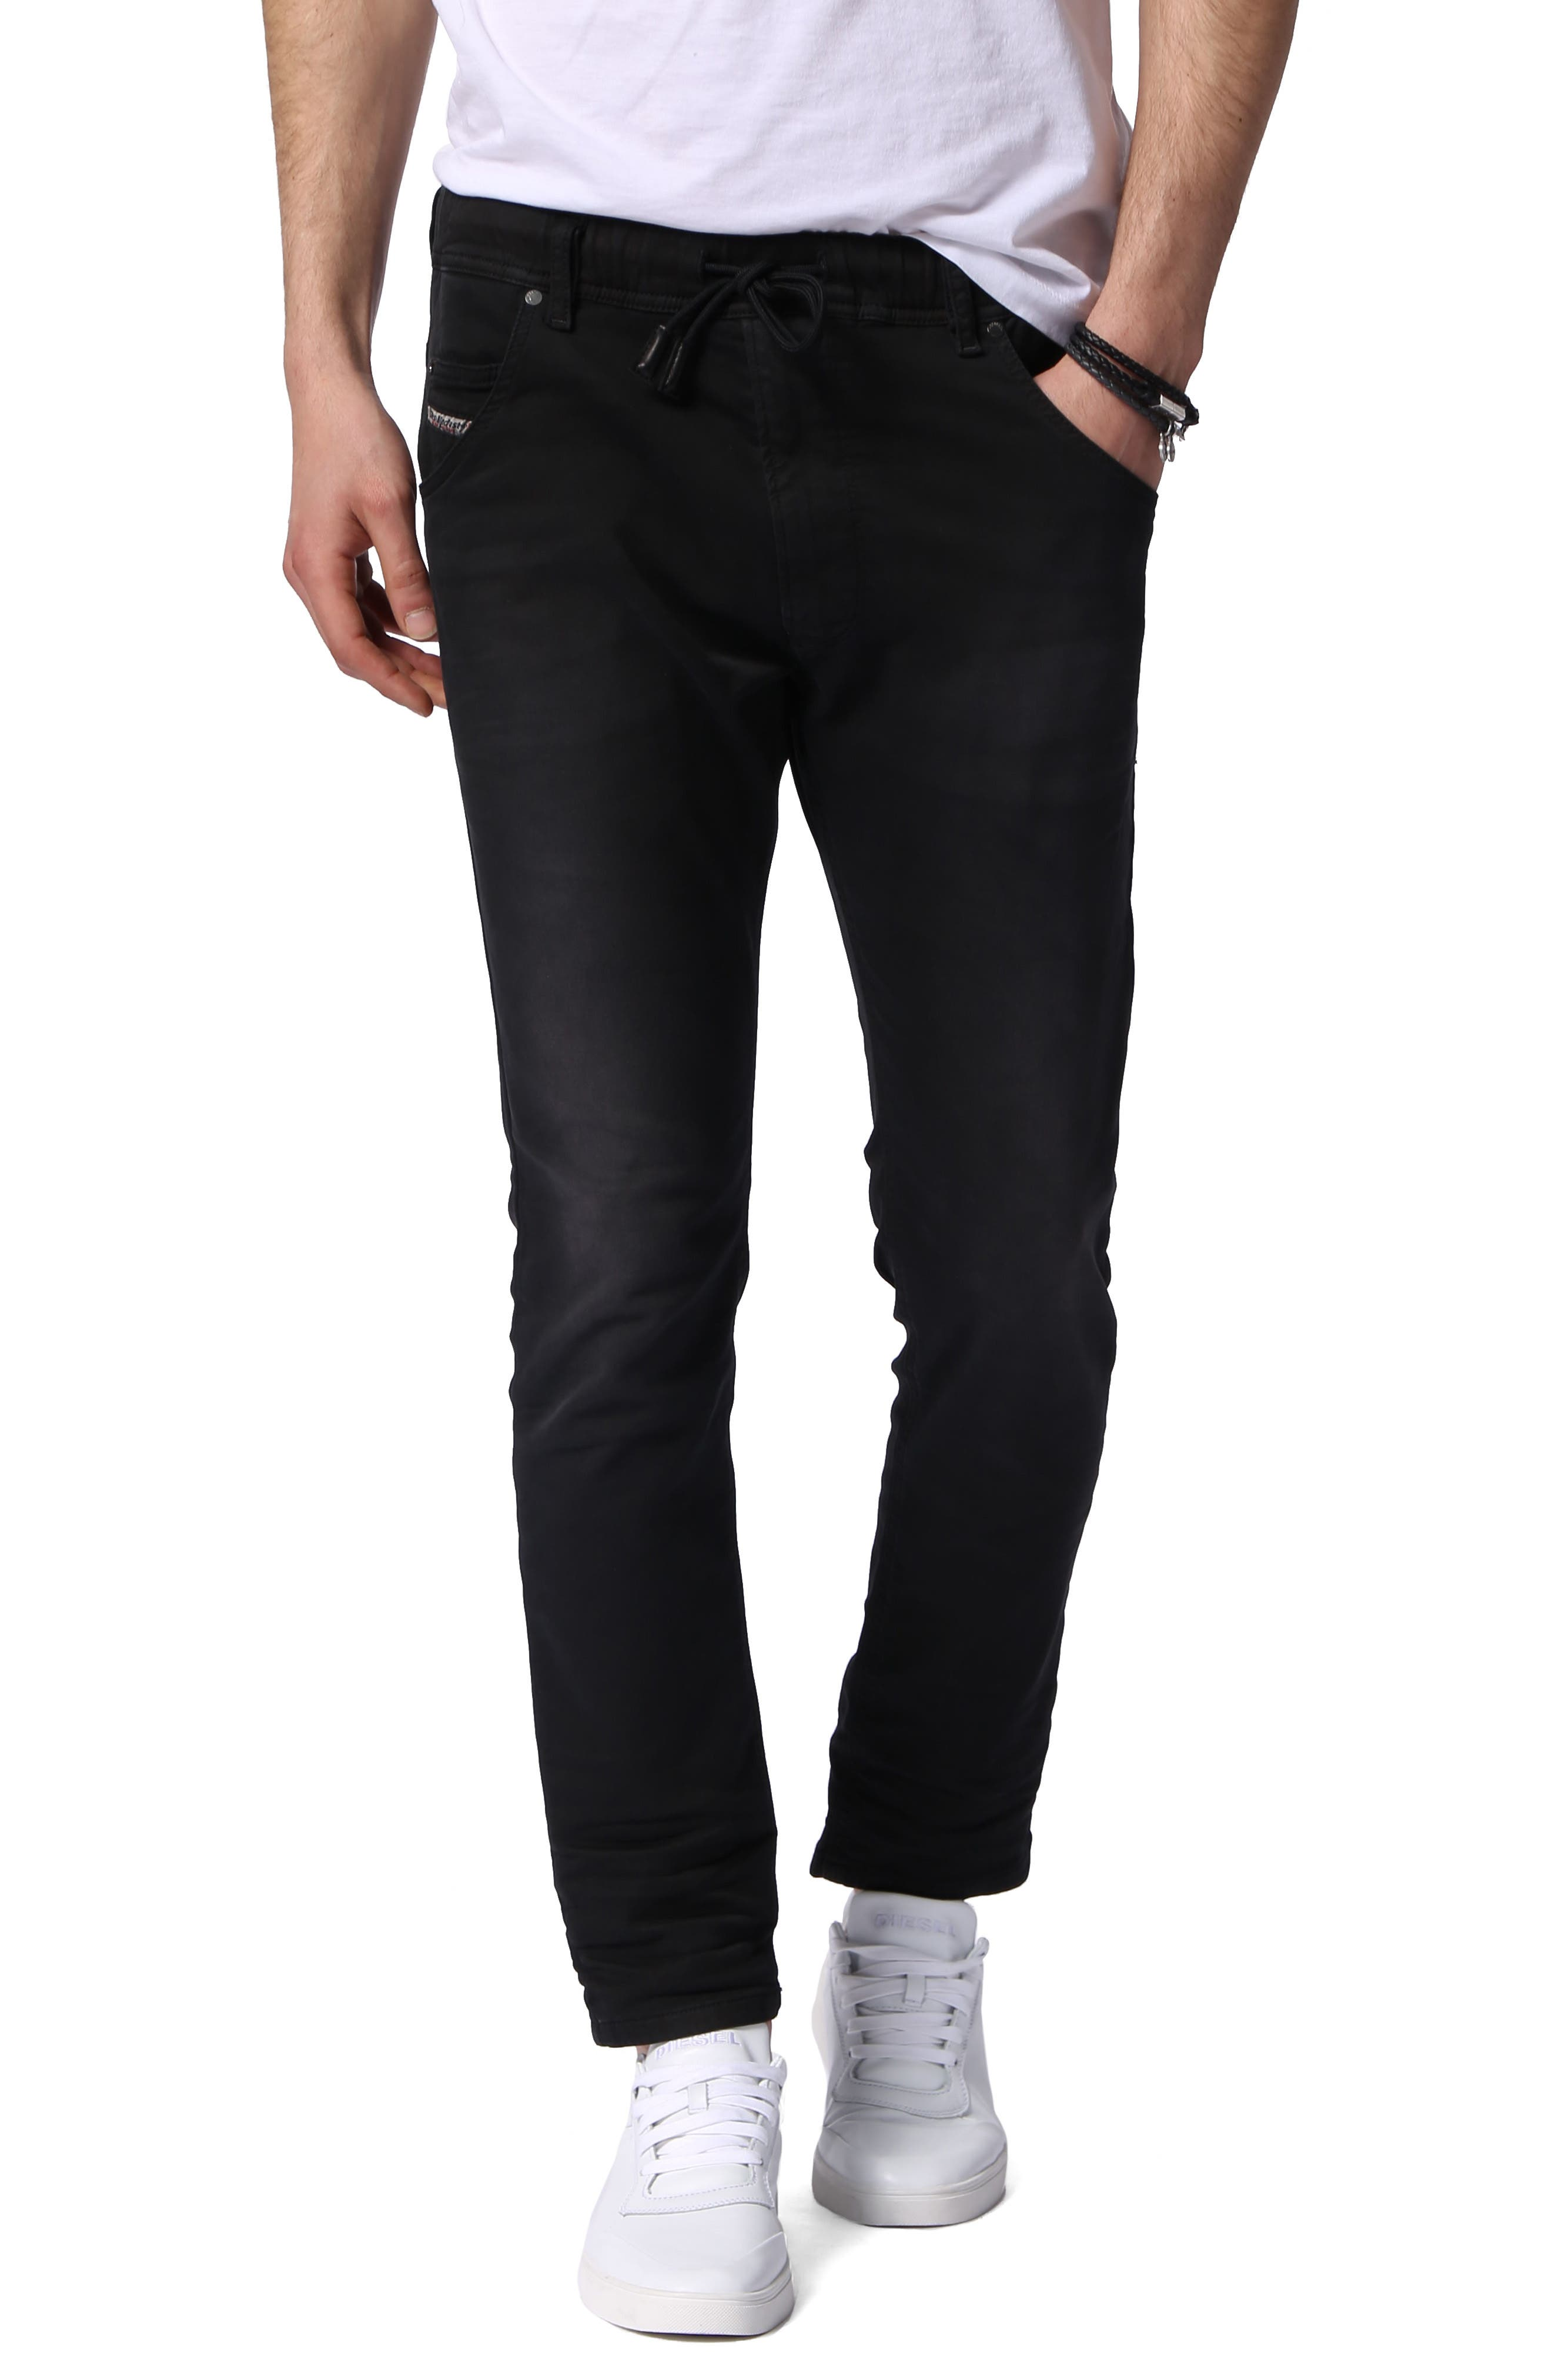 Krooley Skinny Slouchy Jogger Jeans,                         Main,                         color, 0670M